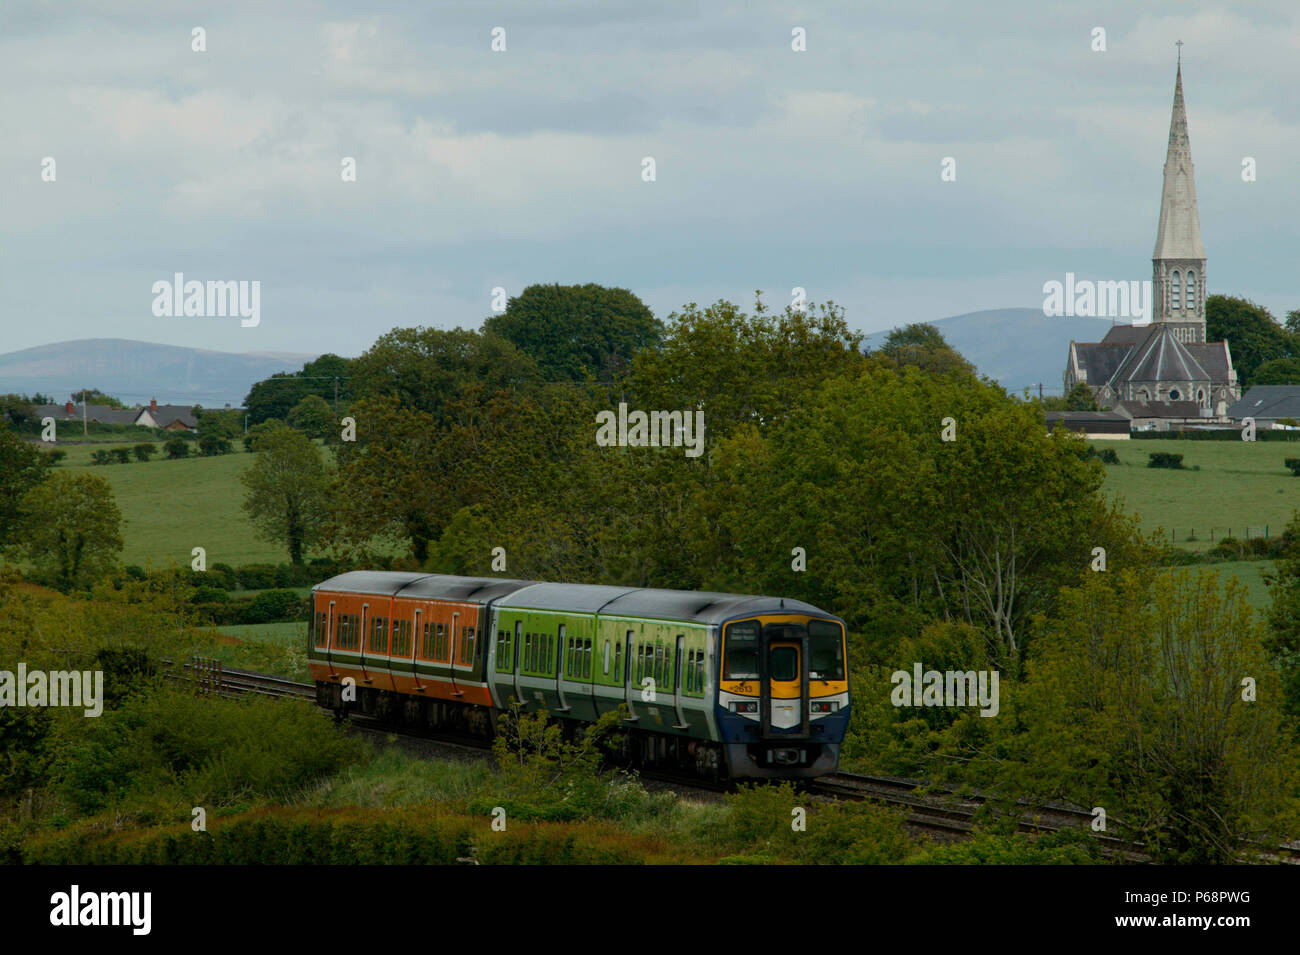 Two CIE DMUs in tandem head eastward past the white abbey at Kildare on Sunday 25th May 2003. - Stock Image